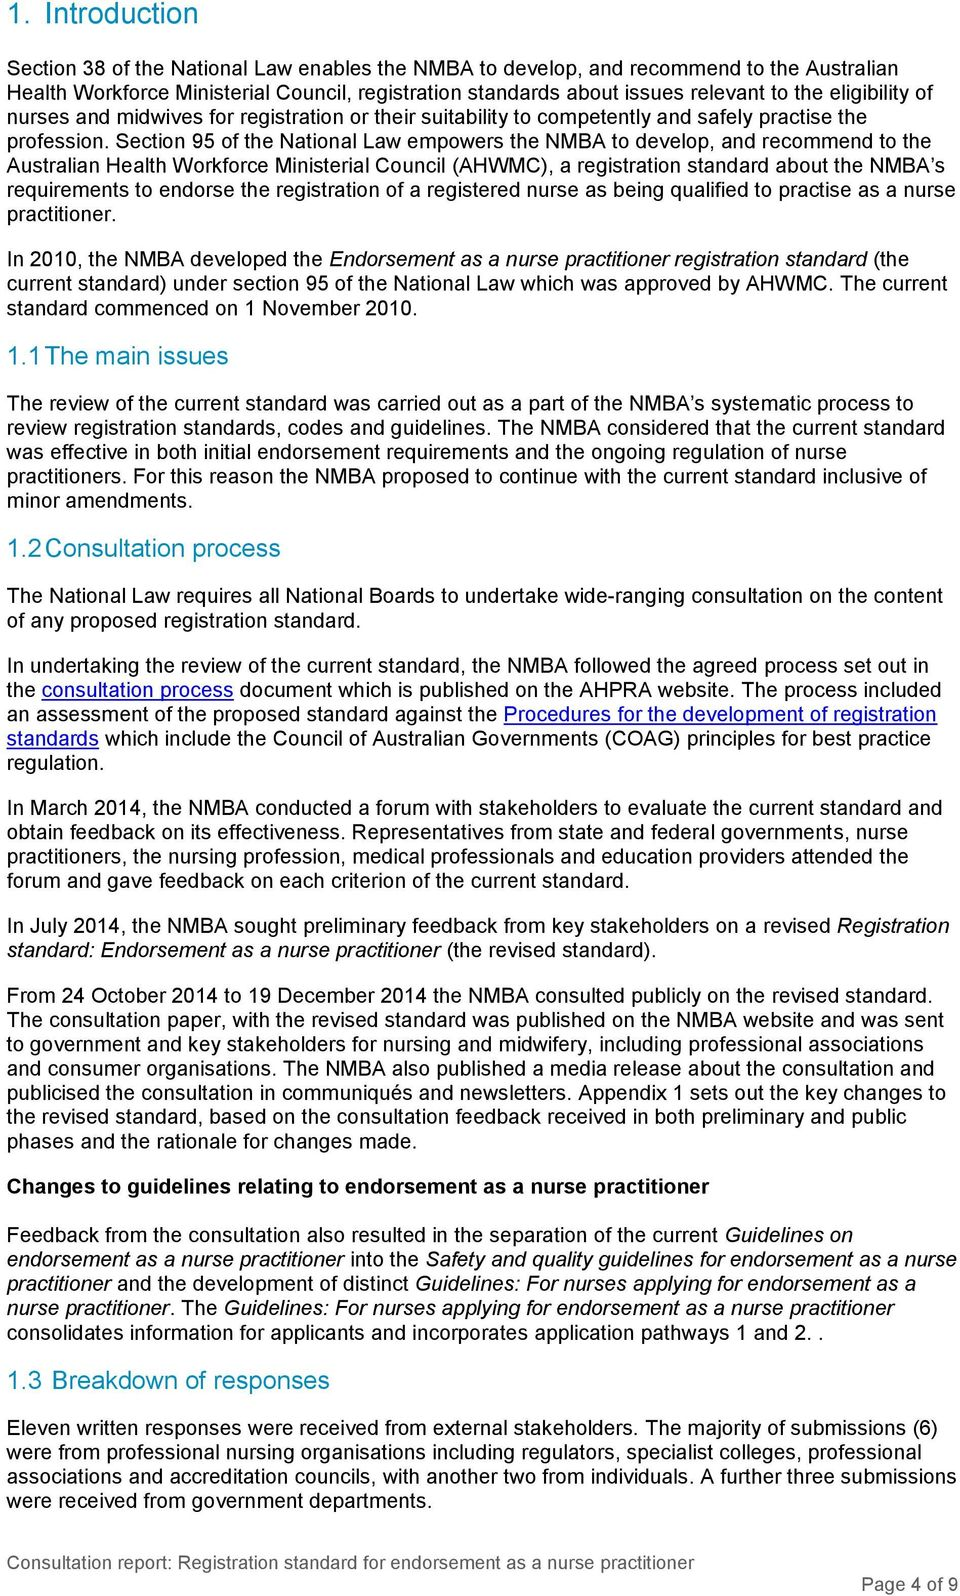 Section 95 of the National Law empowers the NMBA to develop, and recommend to the Australian Health Workforce Ministerial Council (AHWMC), a registration standard about the NMBA s requirements to